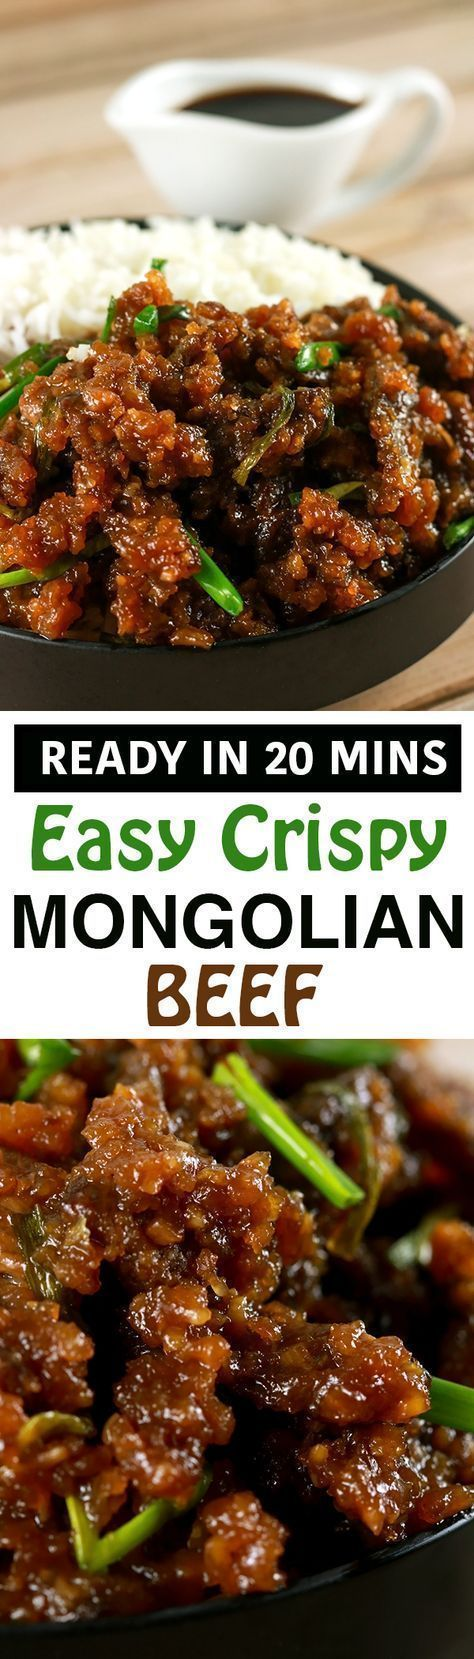 Photo of Easy Crispy Mongolian Beef | Scrambled Chefs